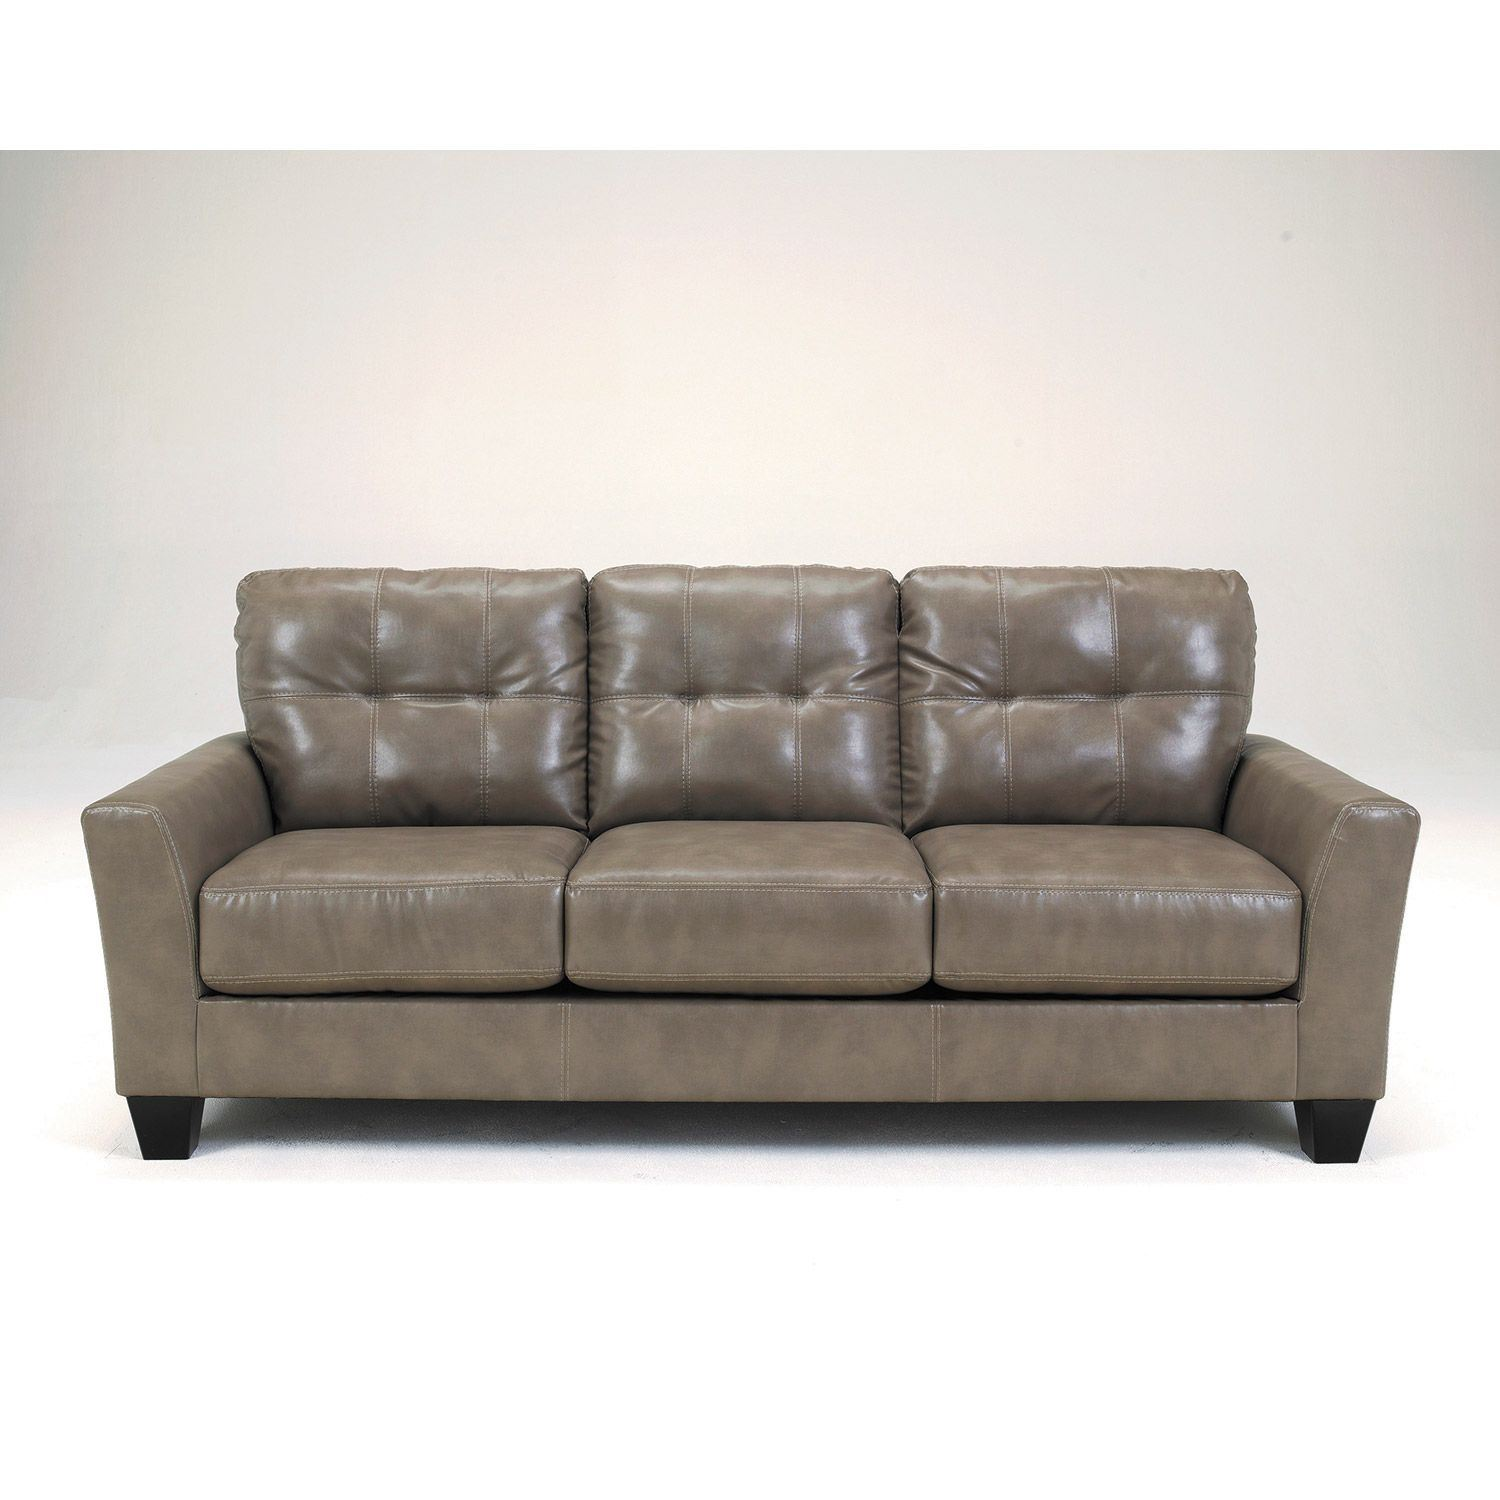 ashley bonded leather sectional sofa manhattan rattan set quarry 0b2 270s 2700138 afw